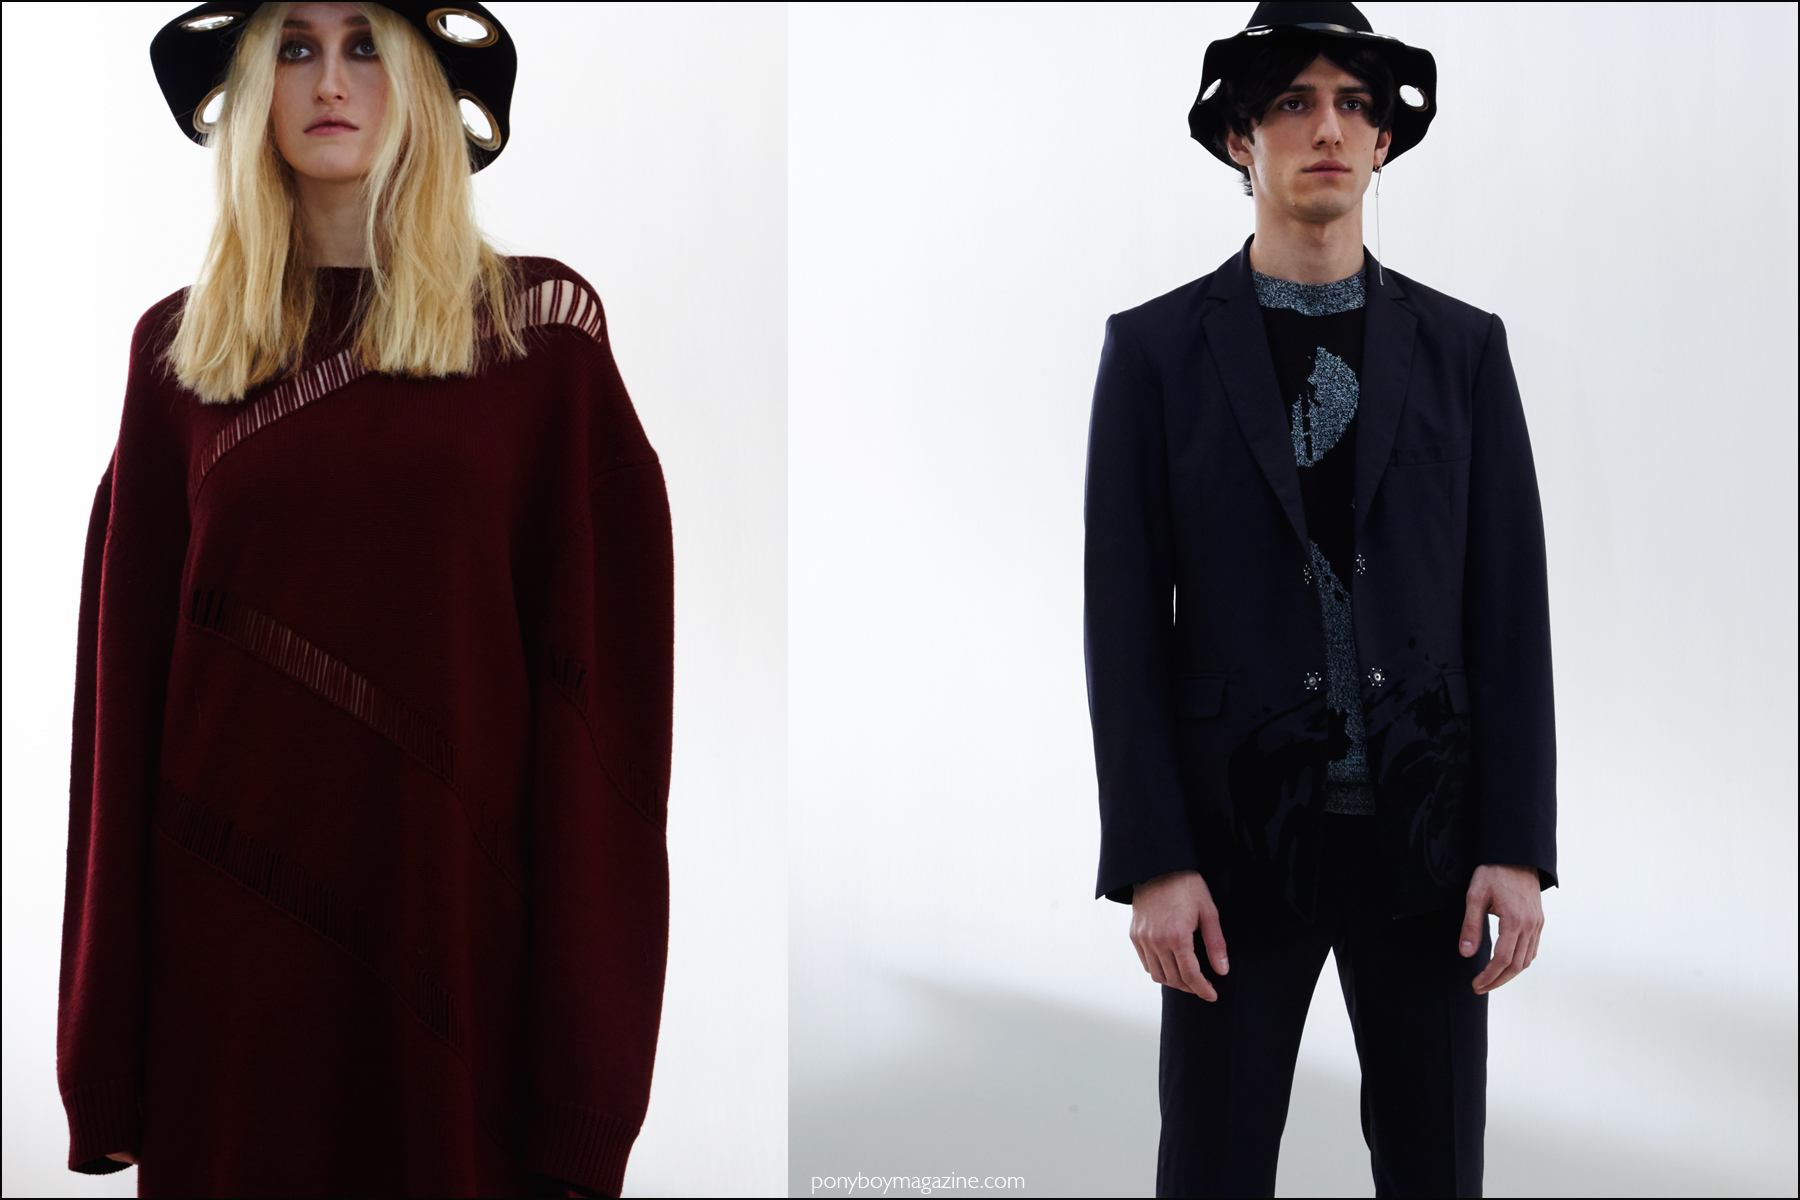 Models photographed at the Kenneth Ning Fall/Winter 2016 presentation by Alexander Thompson for Ponyboy magazine NY.